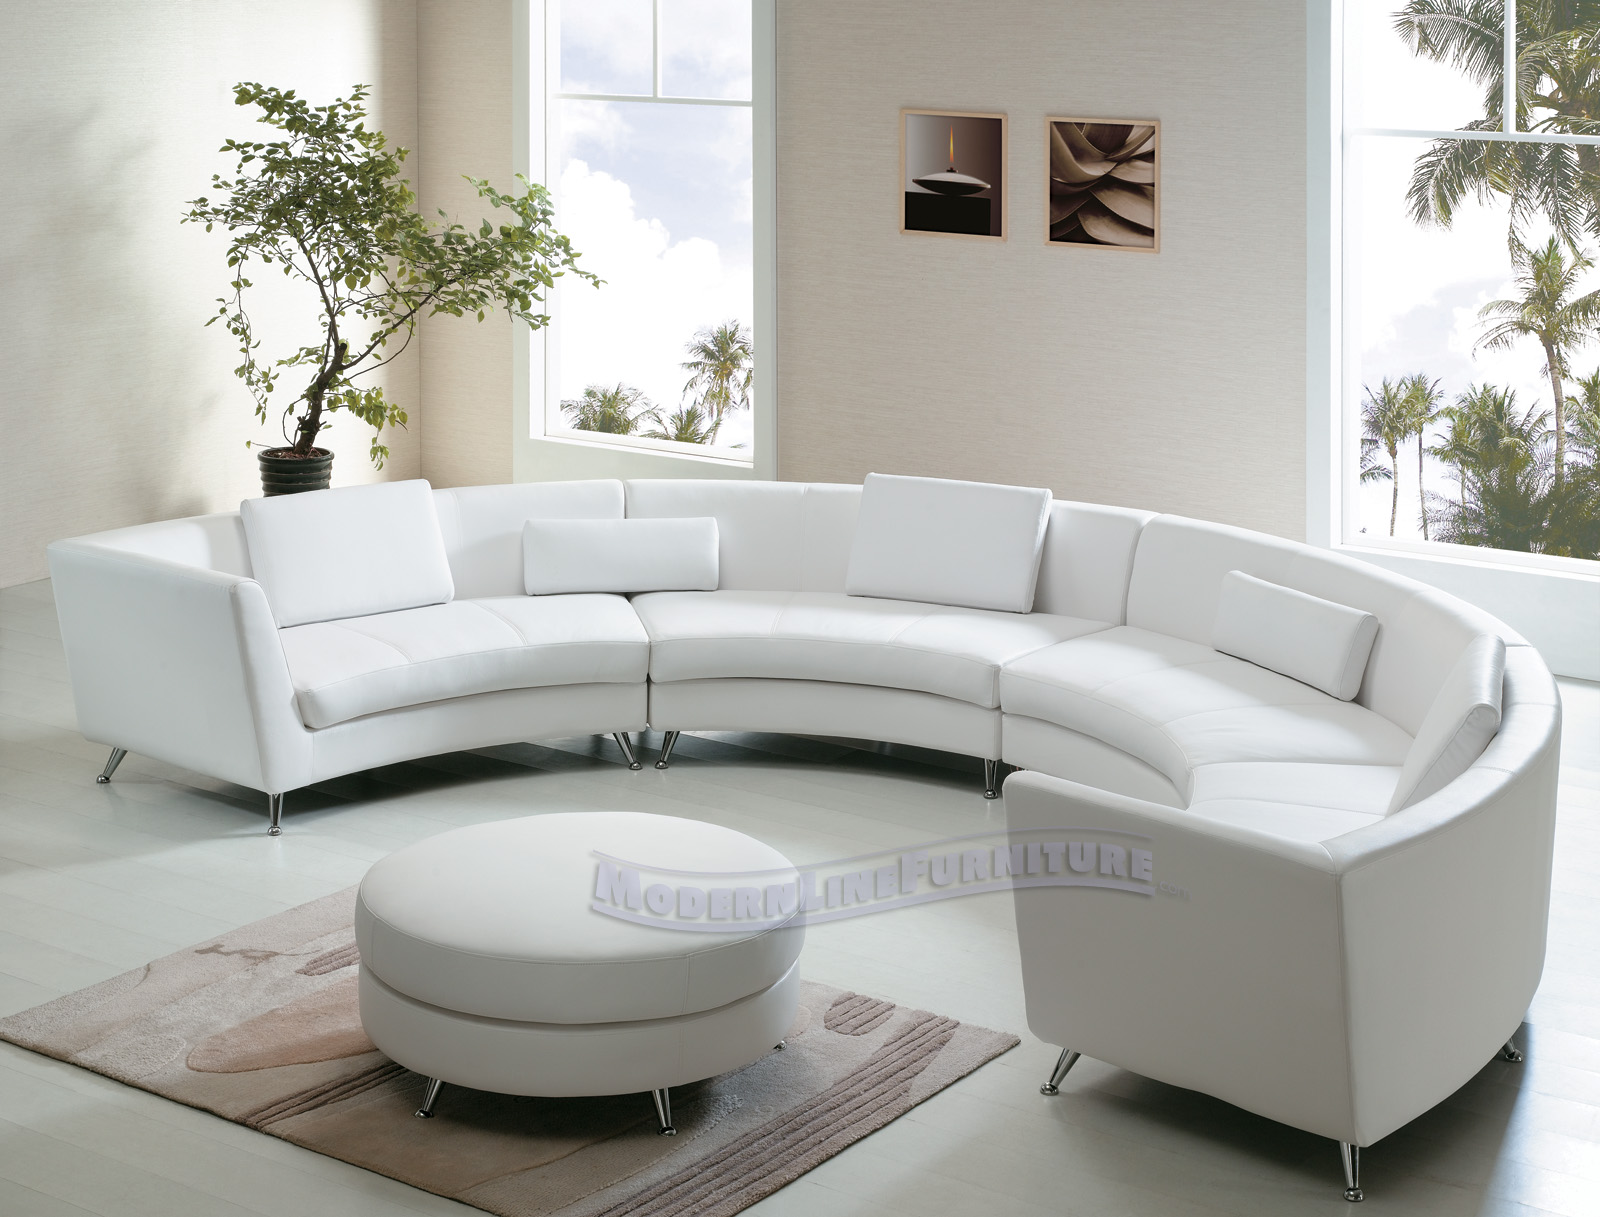 Modern Line Furniture Commercial Furniture Custom Made Furniture